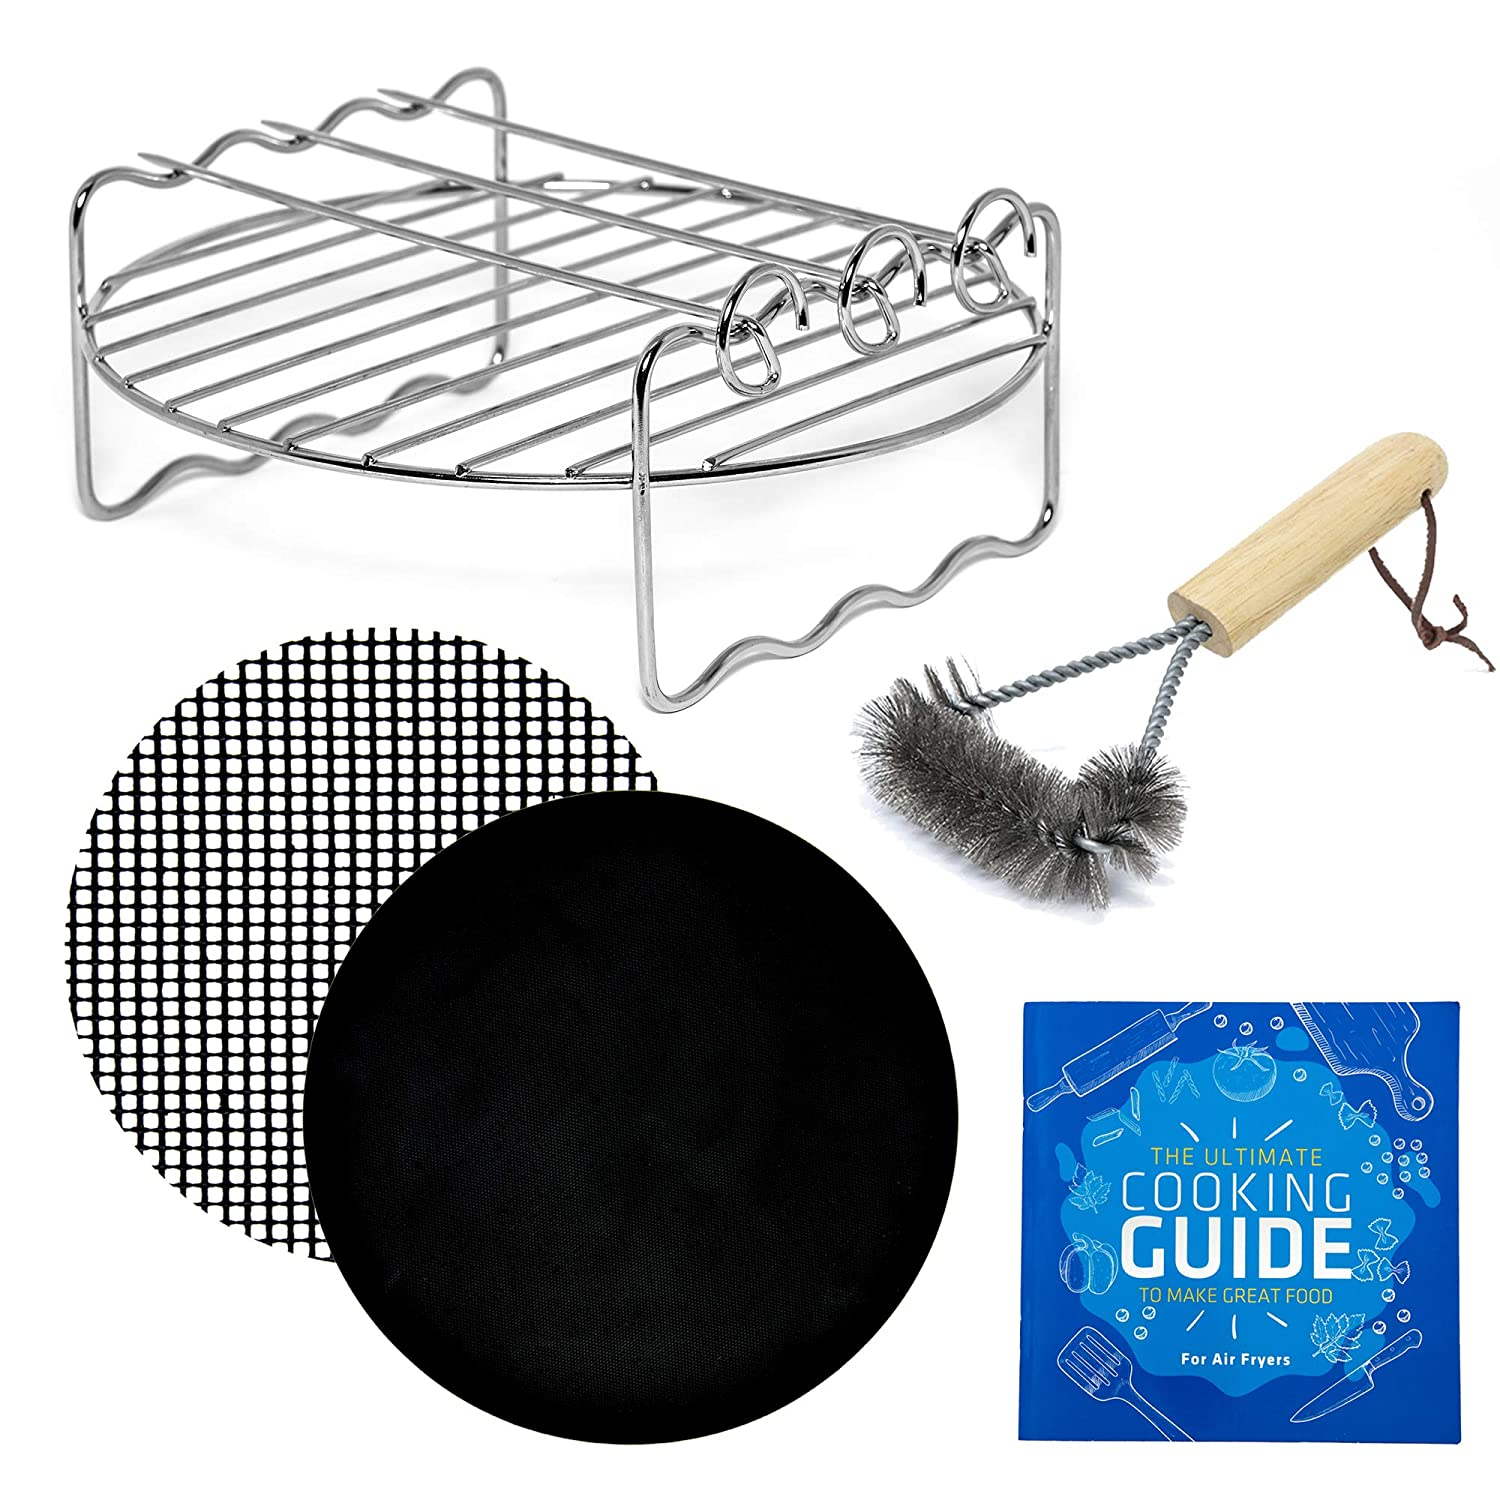 Air Fryer Rack Accessory Compatible with Chefman, Costway, Costzon, Della, Emerald, Flexzion, GoWise, Maxi-Matic, NutriChef +More   Airfryer BBQ Grill Kebab with Grill Brush for Cooking & Grilling